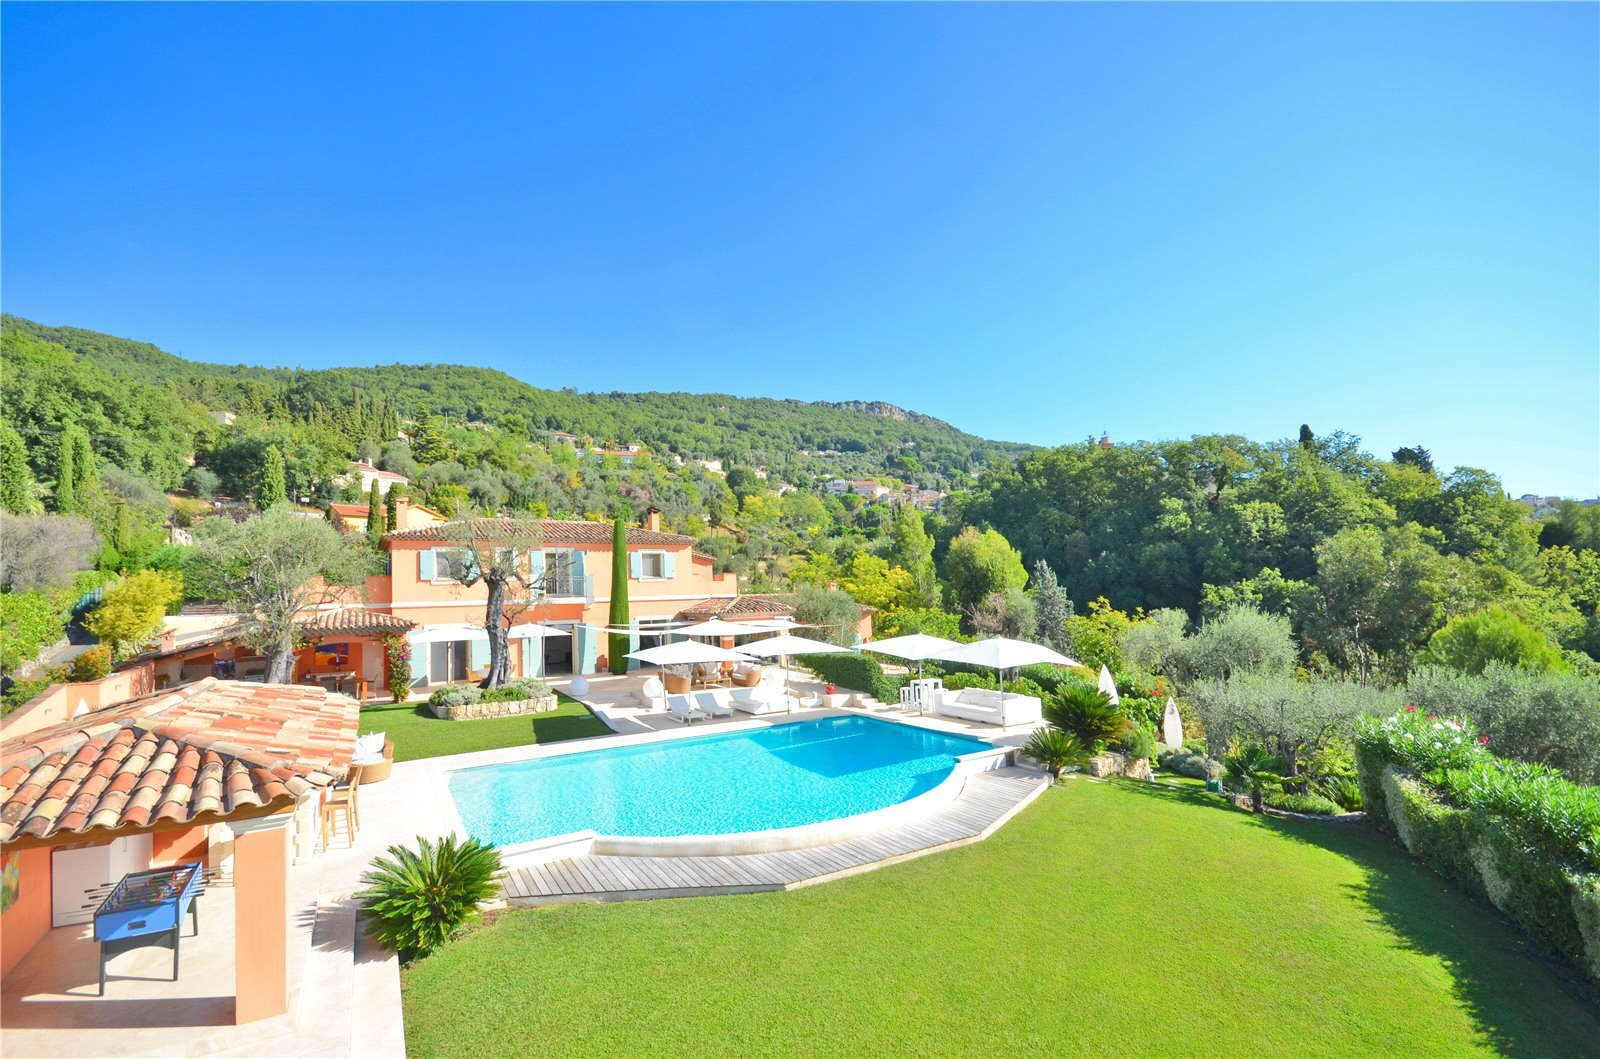 Buying Villa Magagnosc Contemporary villa with 5 en suite bedrooms, pool and independent studio apartment set in stunning  landscaped grounds with panoramic views.